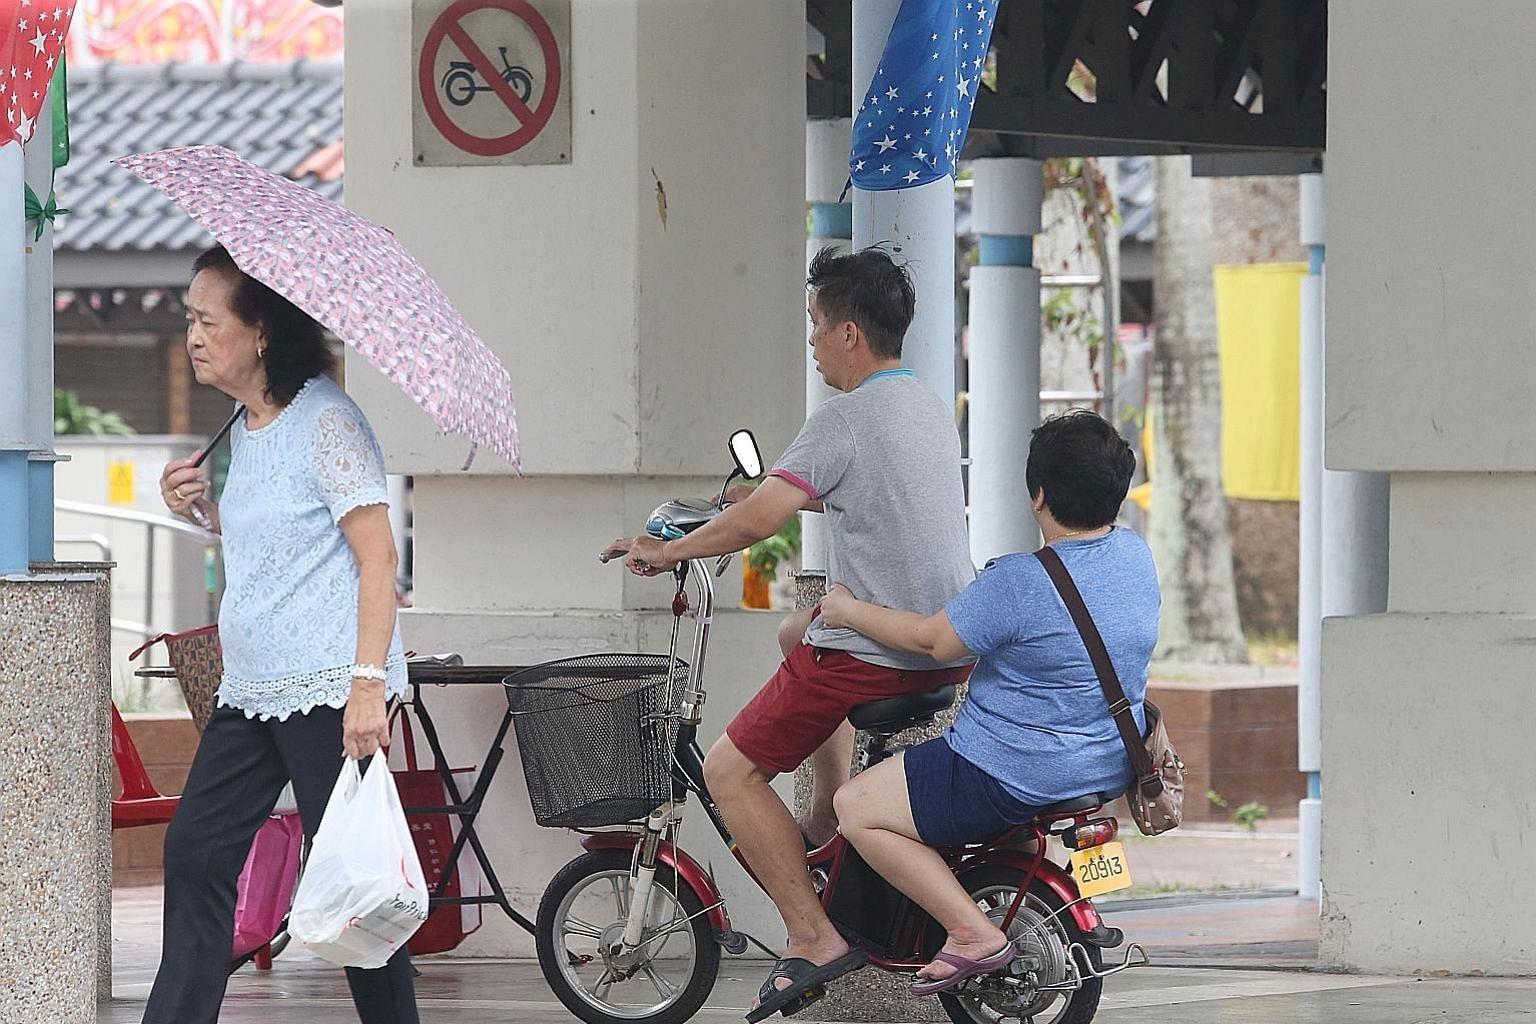 The latest data comes from the first update by the 15 PAP-run town councils since the ban kicked in on Sept 1. These town councils prohibit the riding of PMDs in areas such as void decks and common corridors.